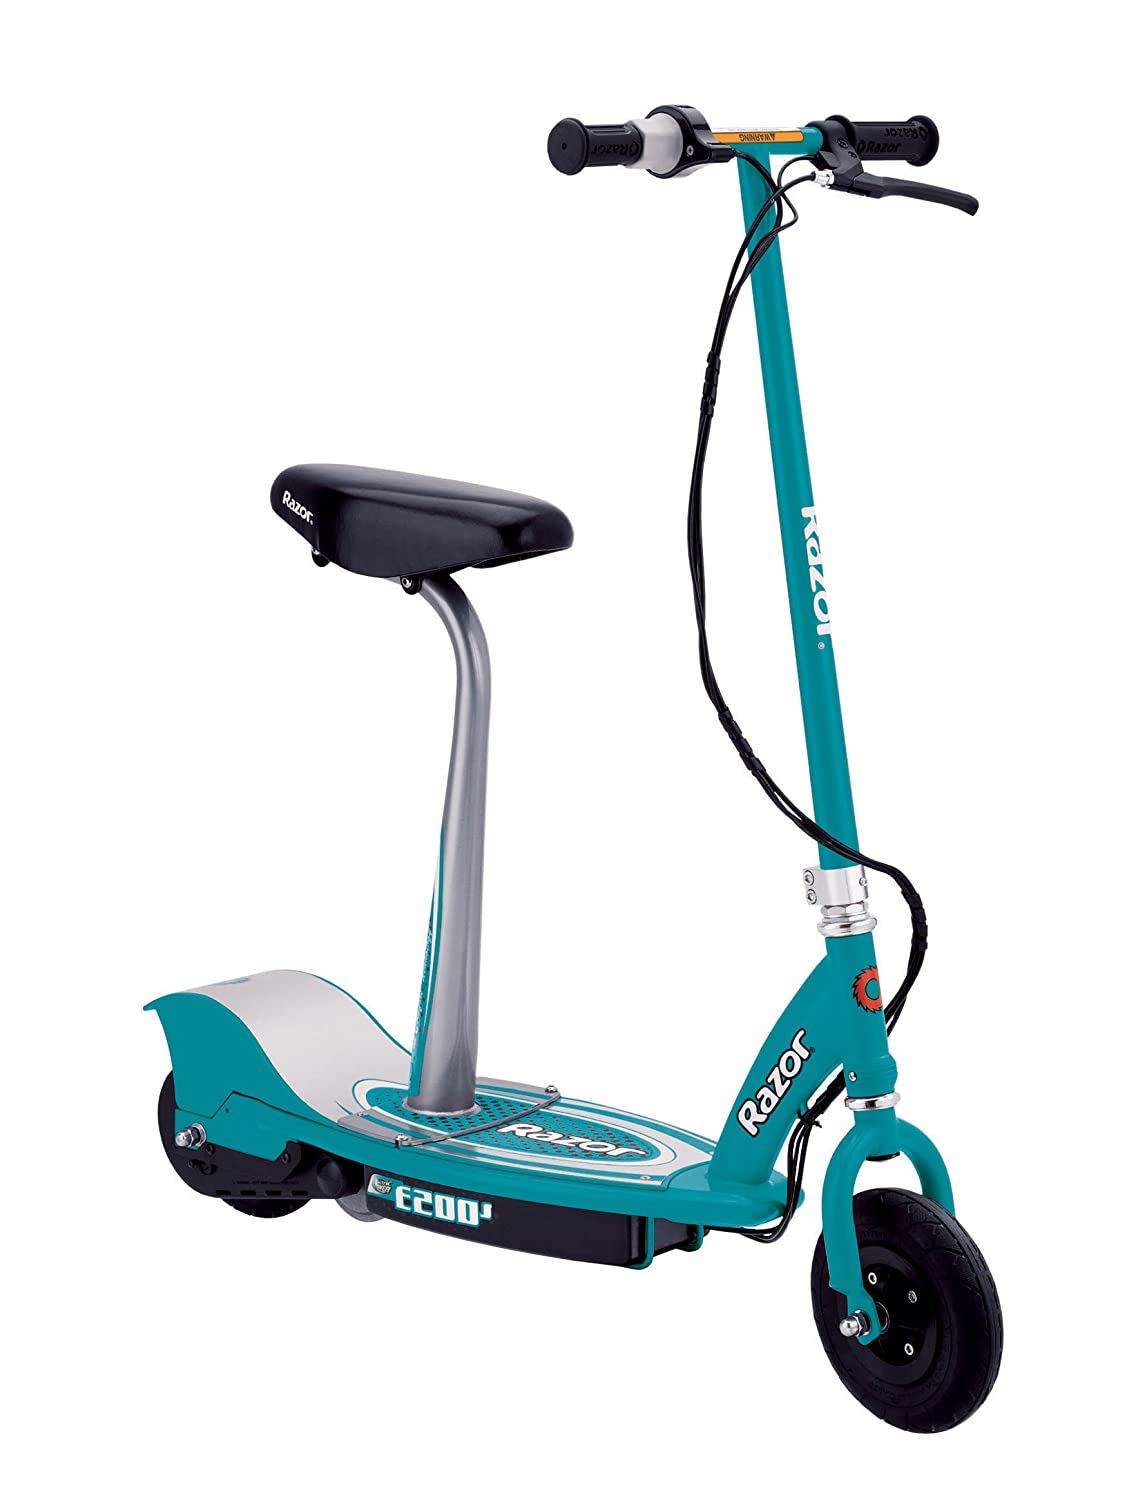 fabricaciop razor electric scooters for kids. Black Bedroom Furniture Sets. Home Design Ideas